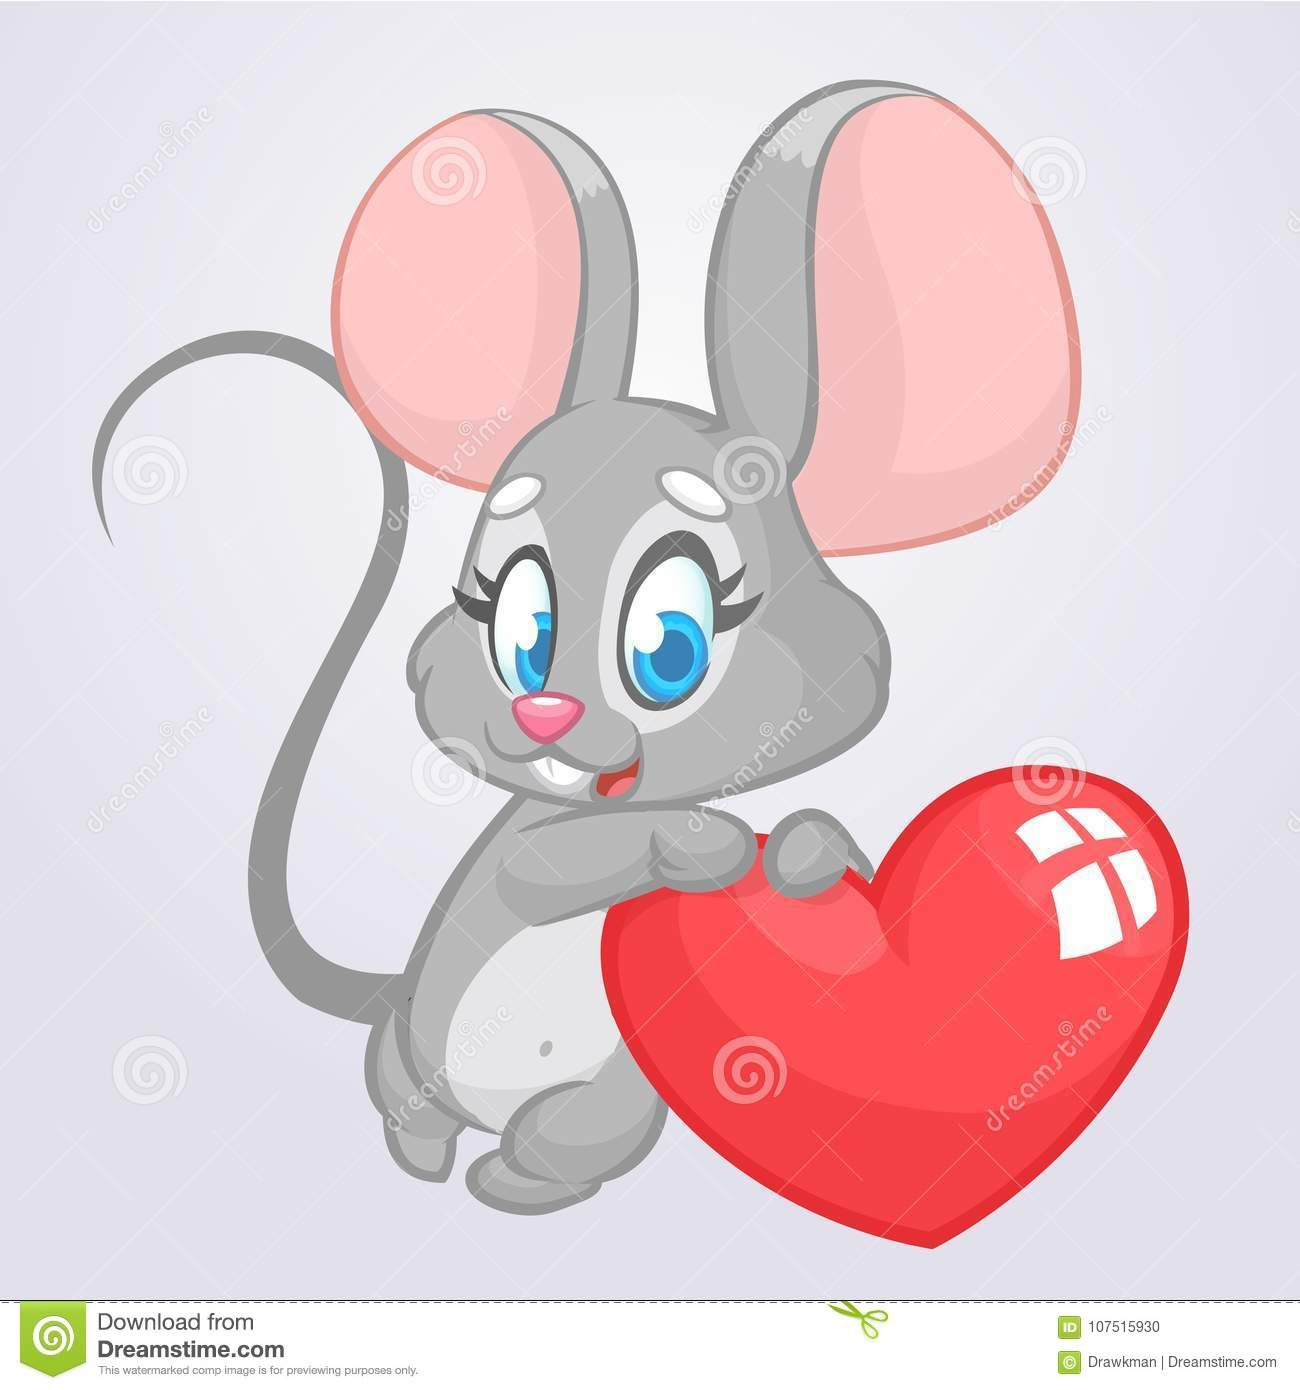 Illustration About Cartoon Cute Mouse Holding A Love Heart Vector